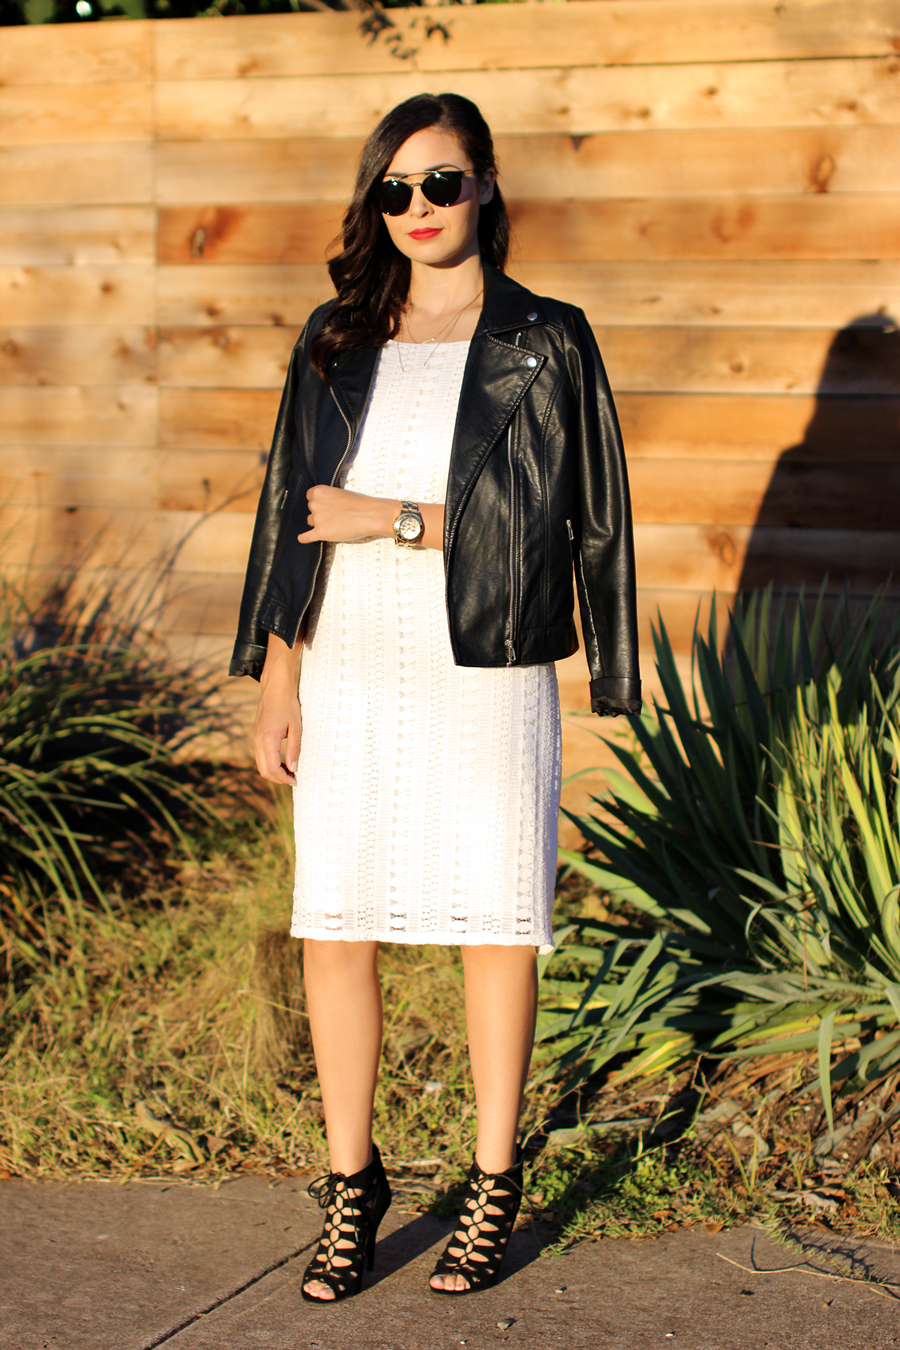 FIXIN-TO-THRILL-WHITE-HALTER-DRESS-STRAPPY-HEELS-LEATHER-TREND-FALL-OCTOBER-ATX-AUSTIN-STYLE-BLOG-FW15-TRENDY-CHIC-GLAM-TEXAS10